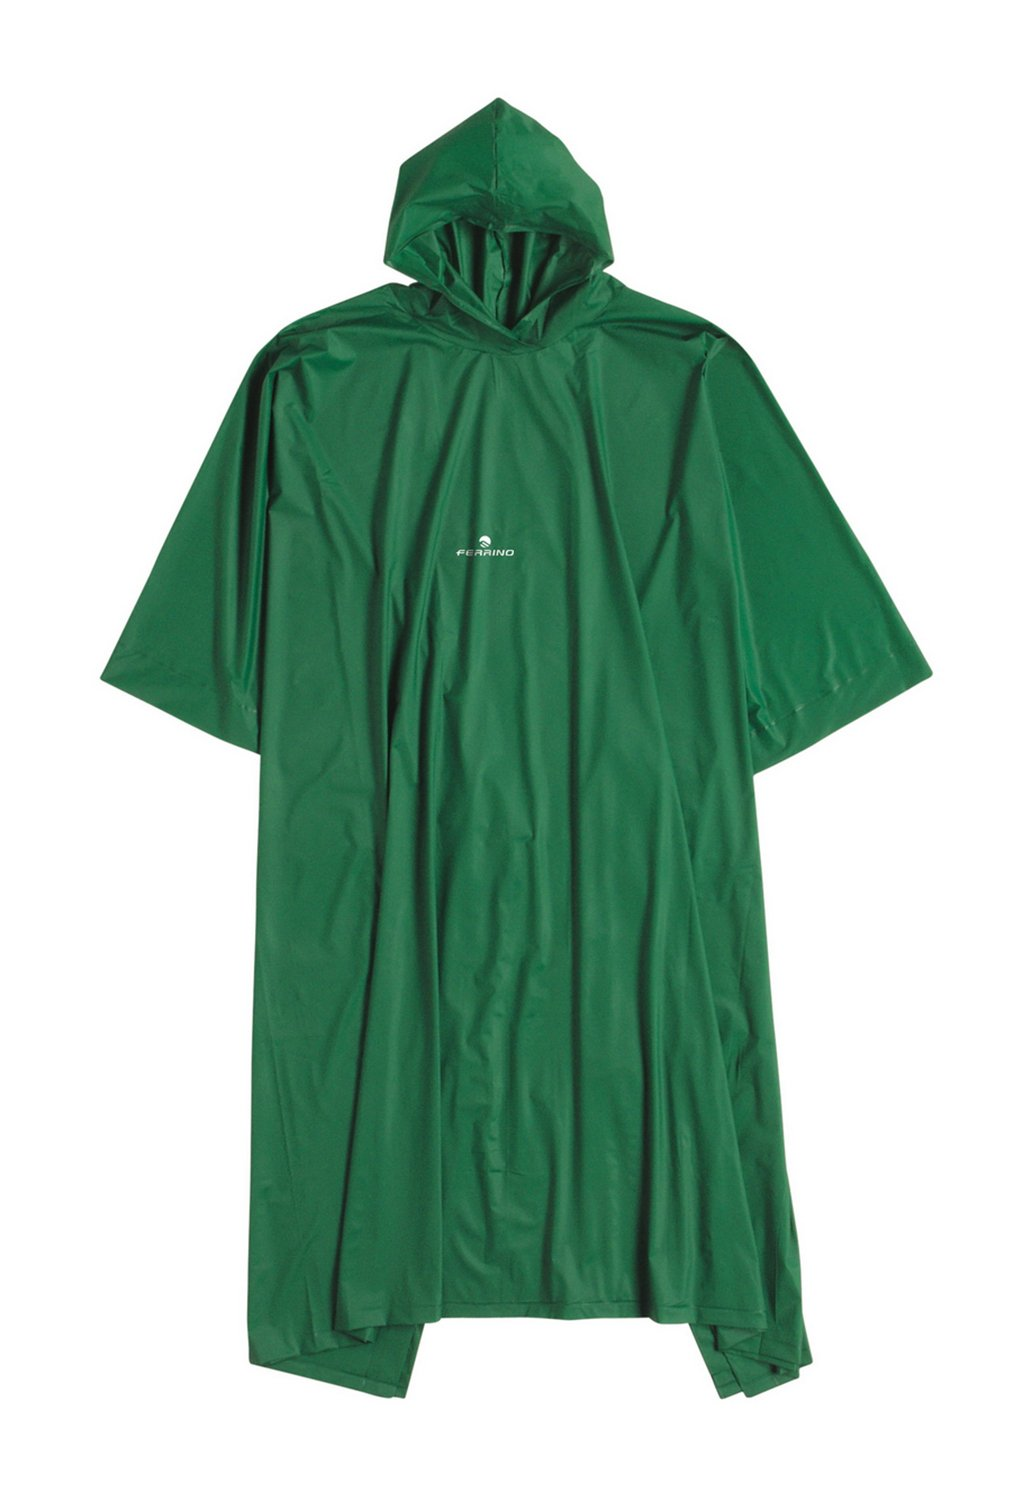 Ferrino – Poncho, color verde